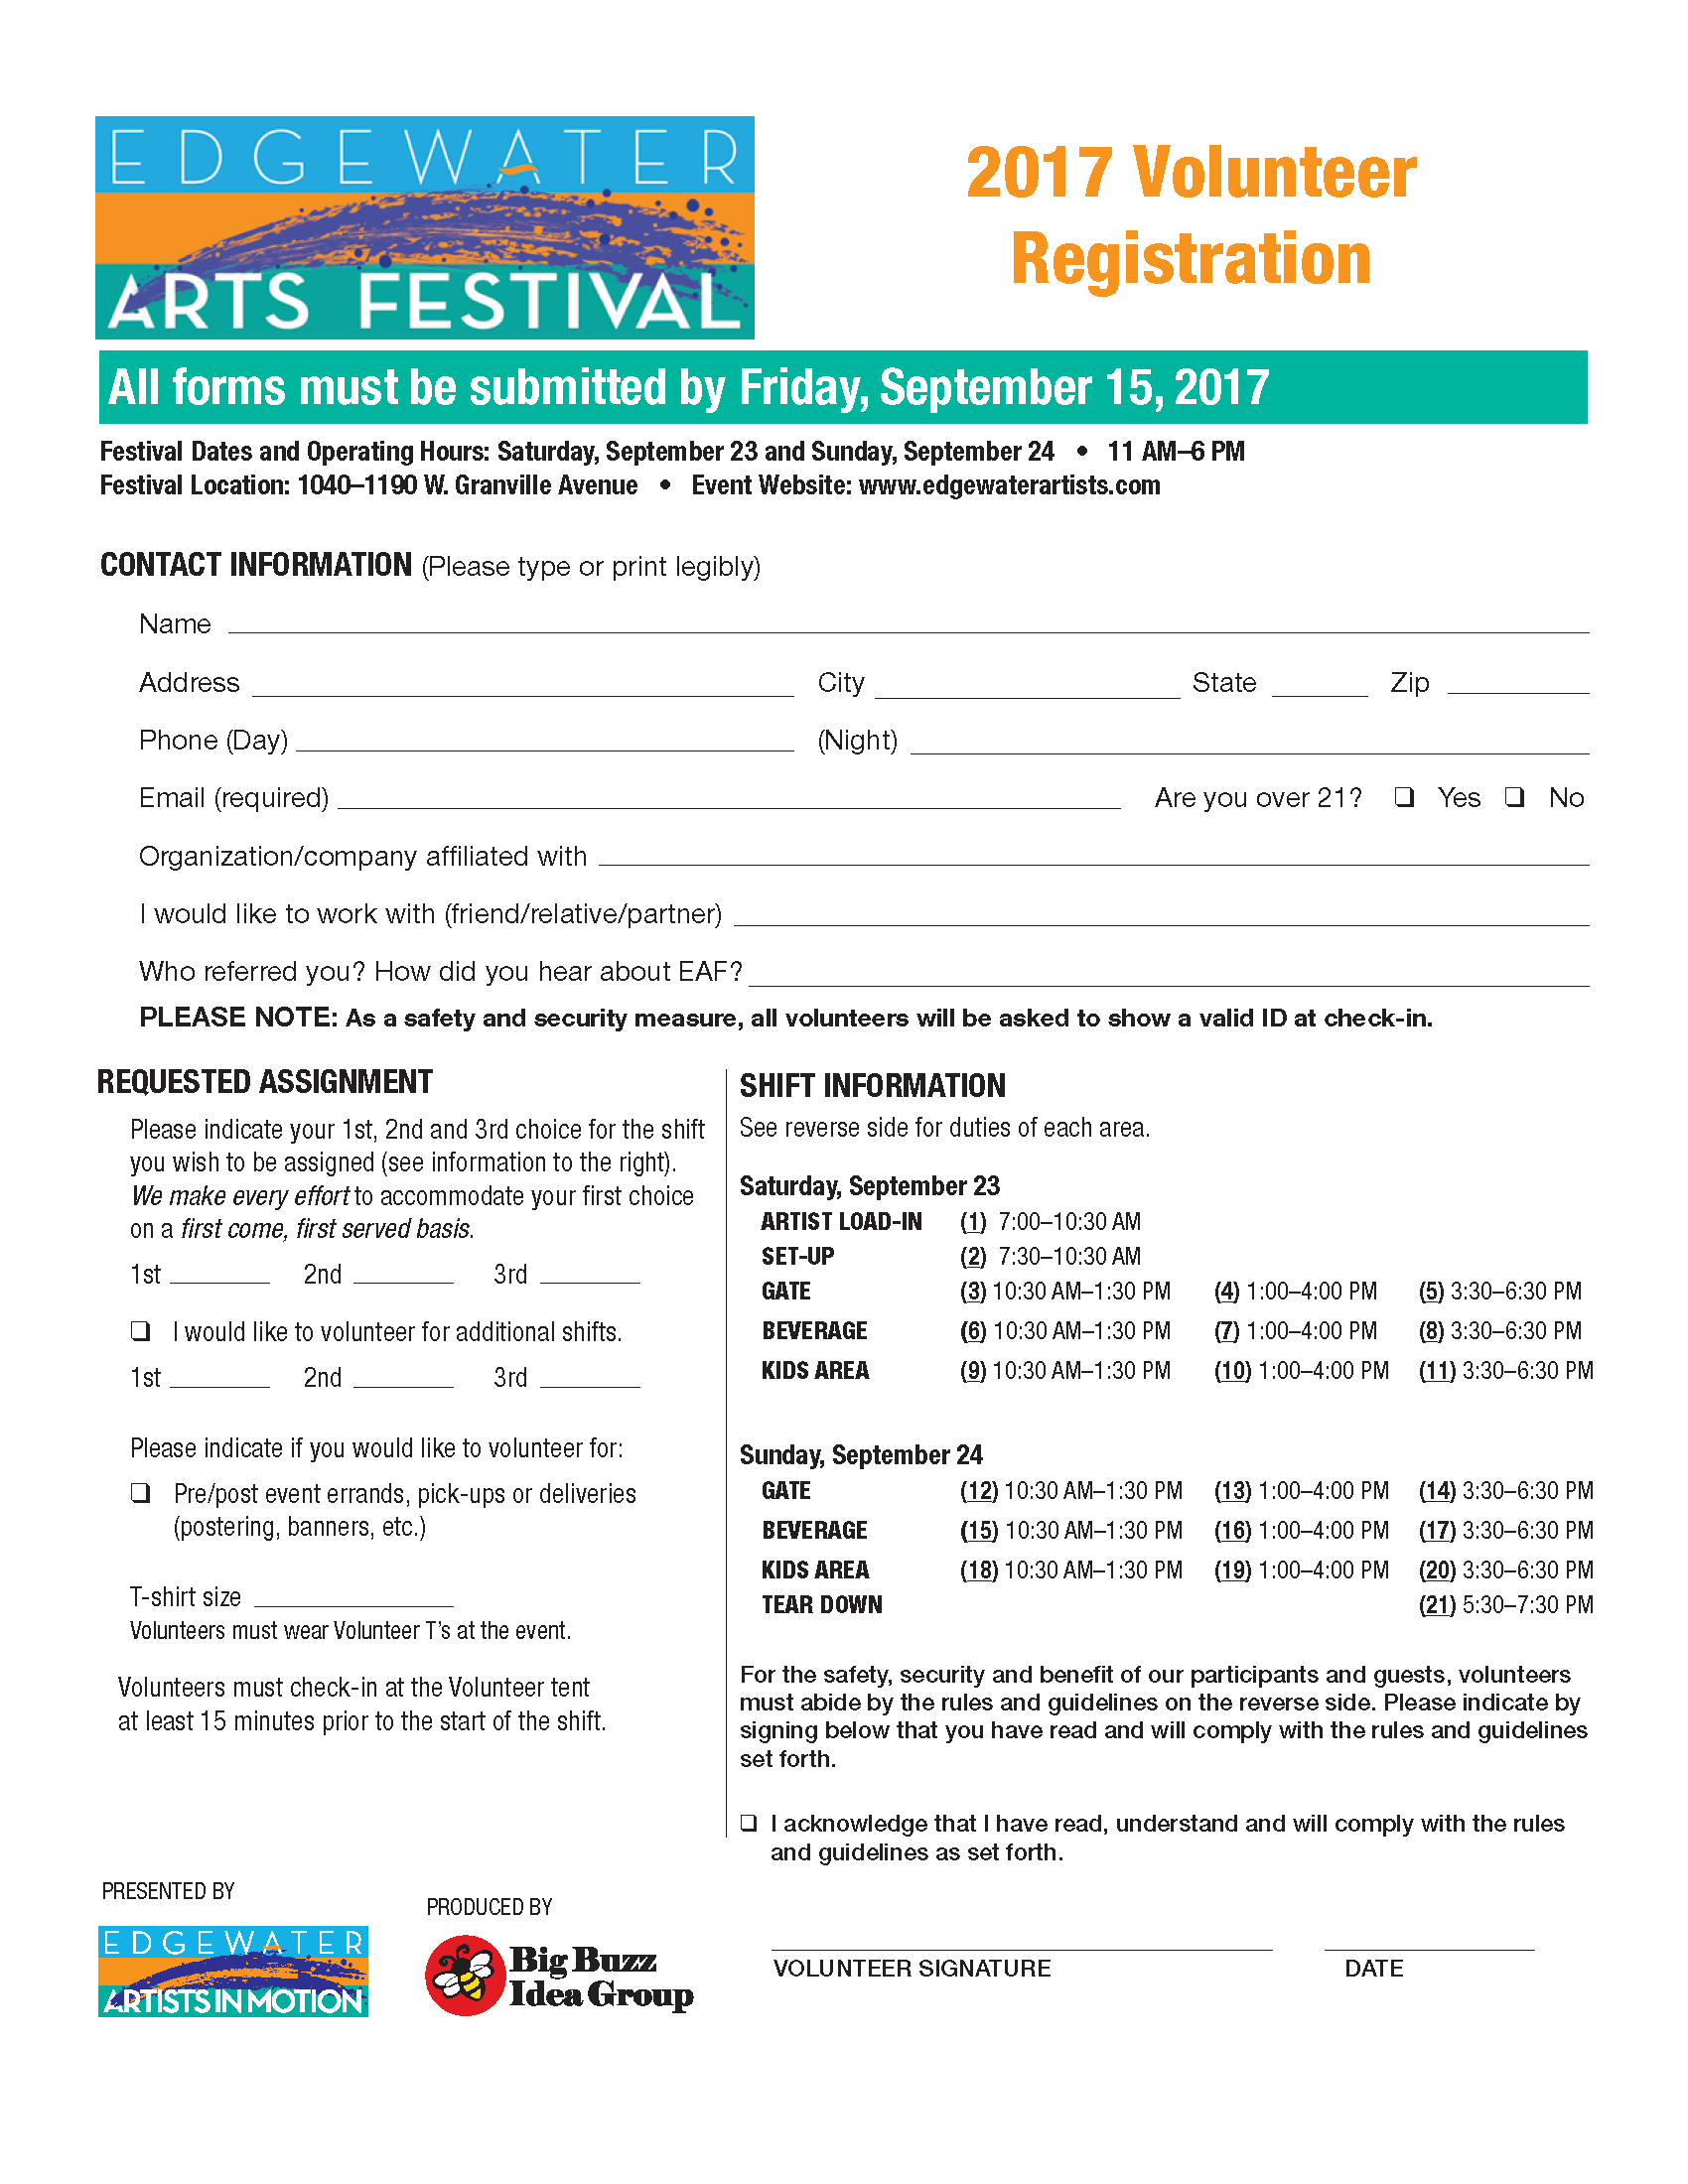 festival volunteer application form - Heart.impulsar.co